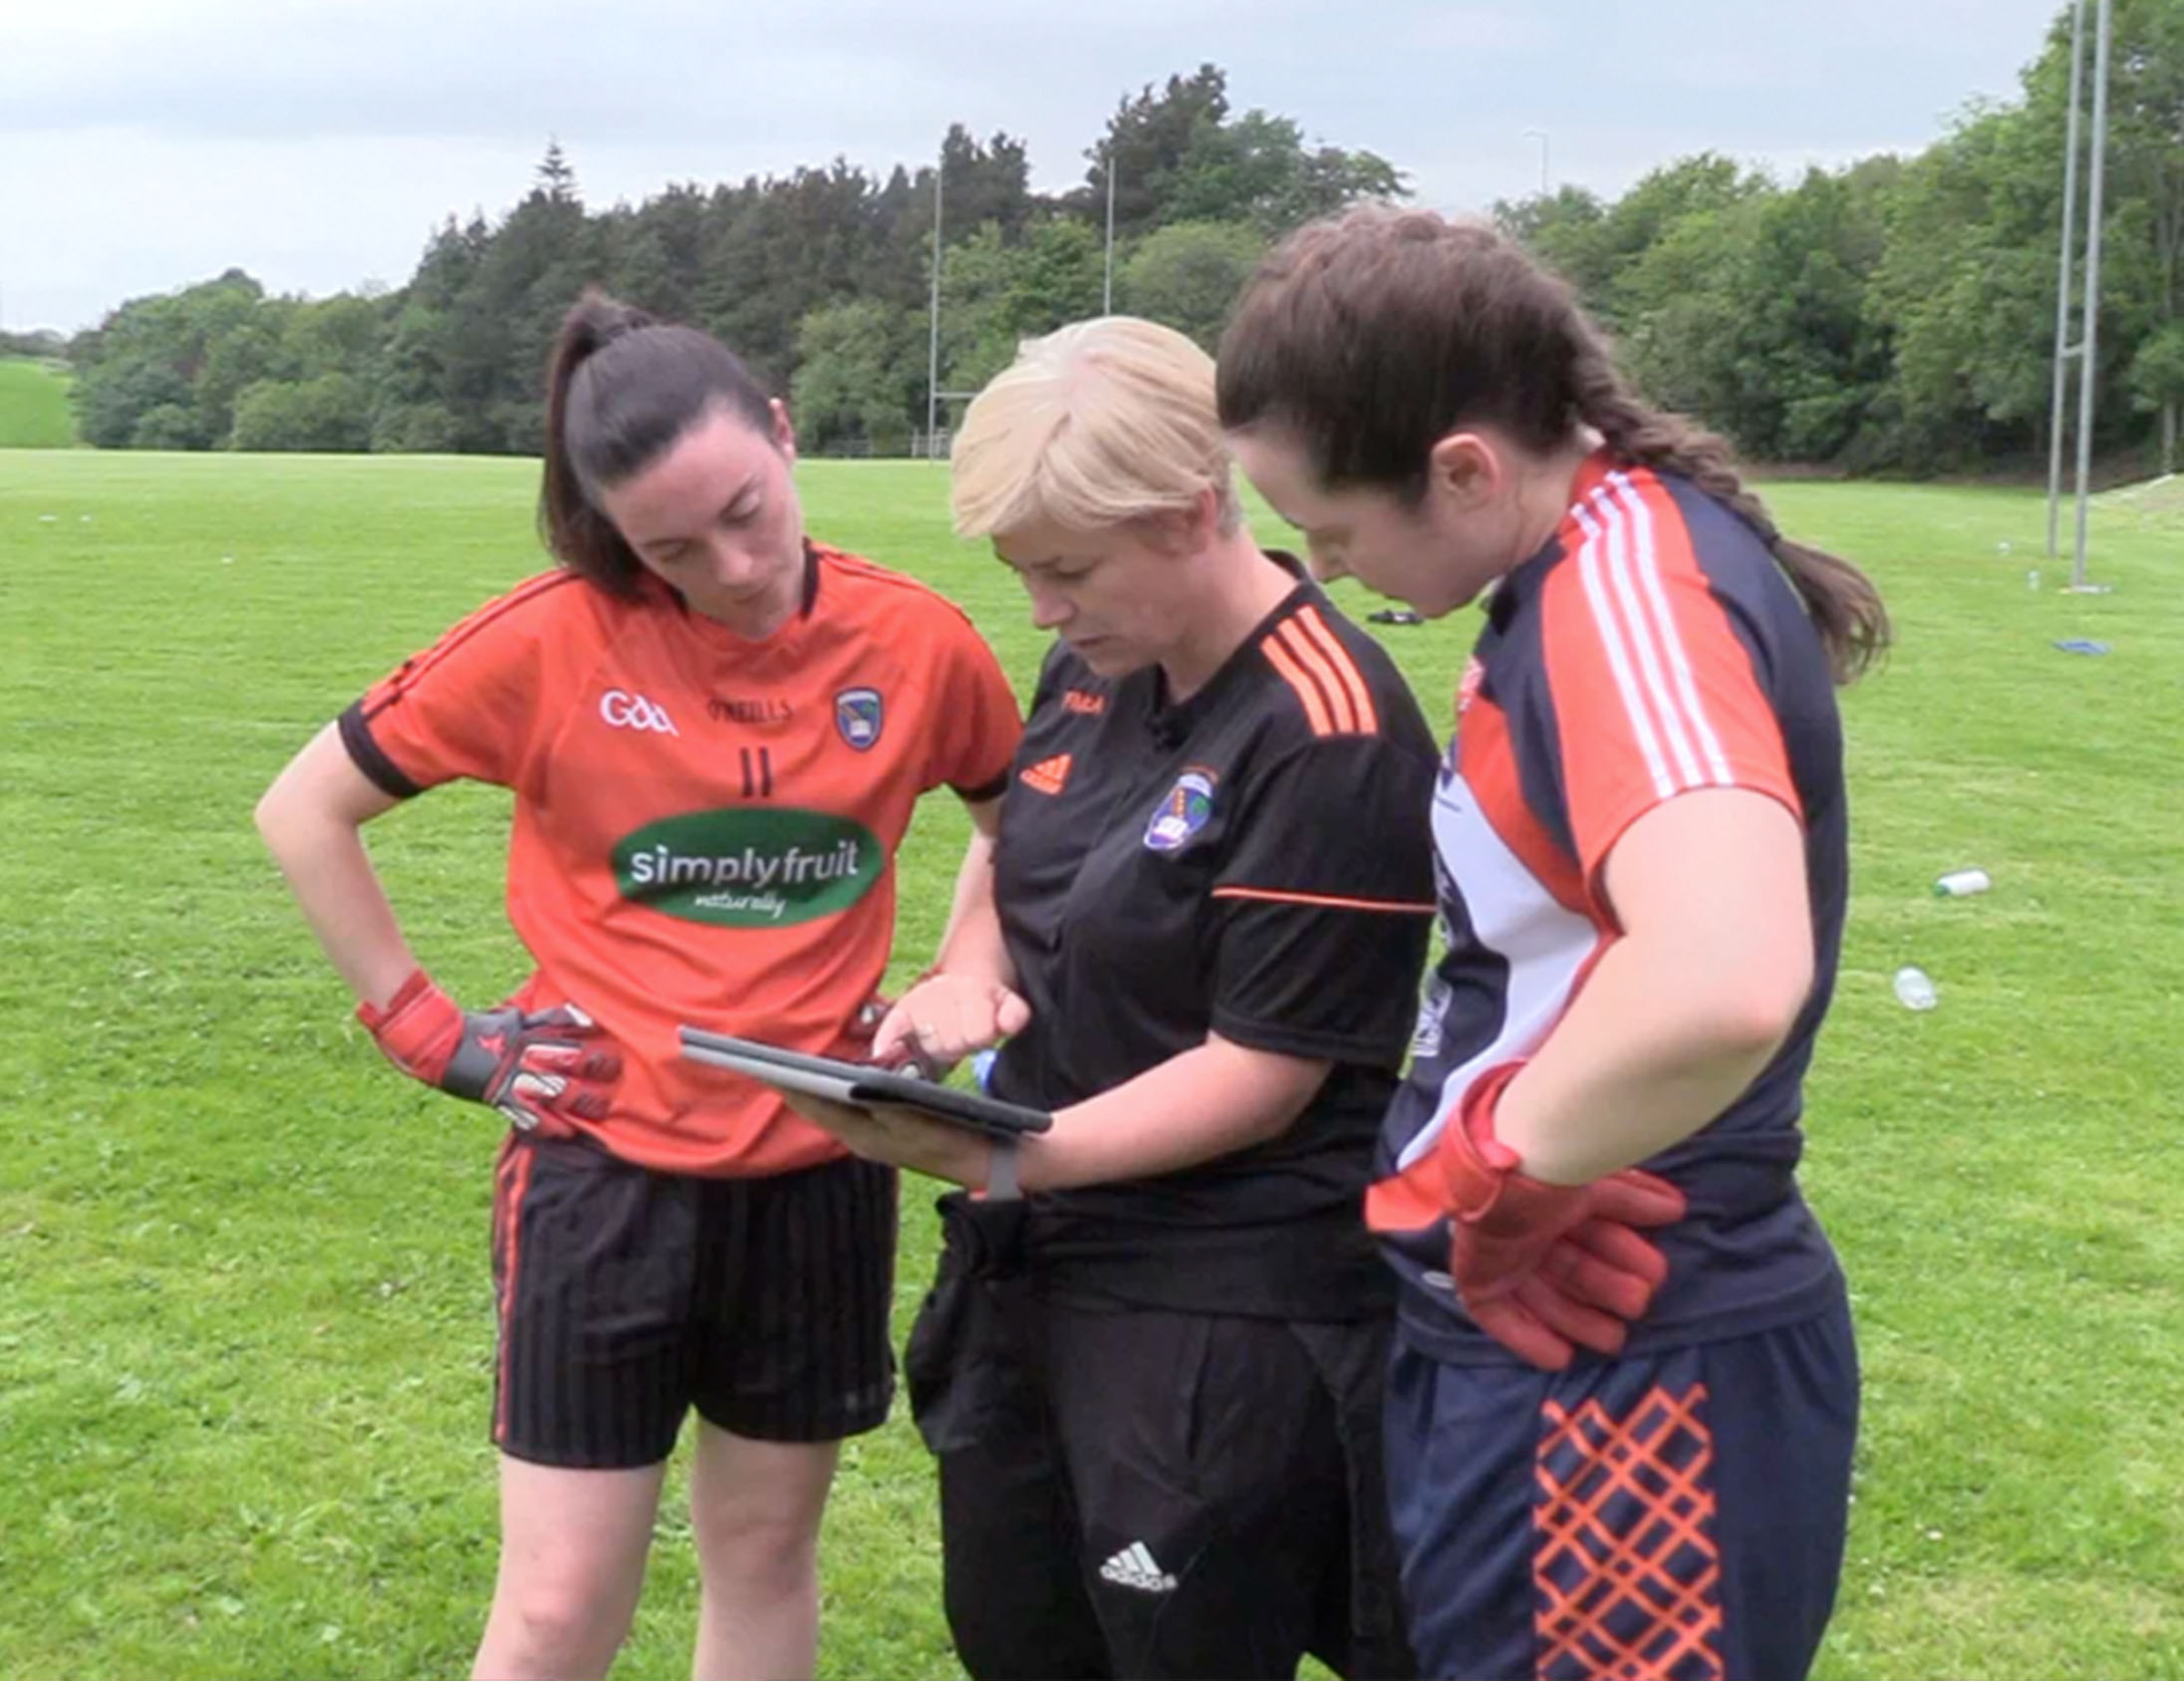 Armagh Ladies Gaelic Footballers gain an edge with Performa Sports